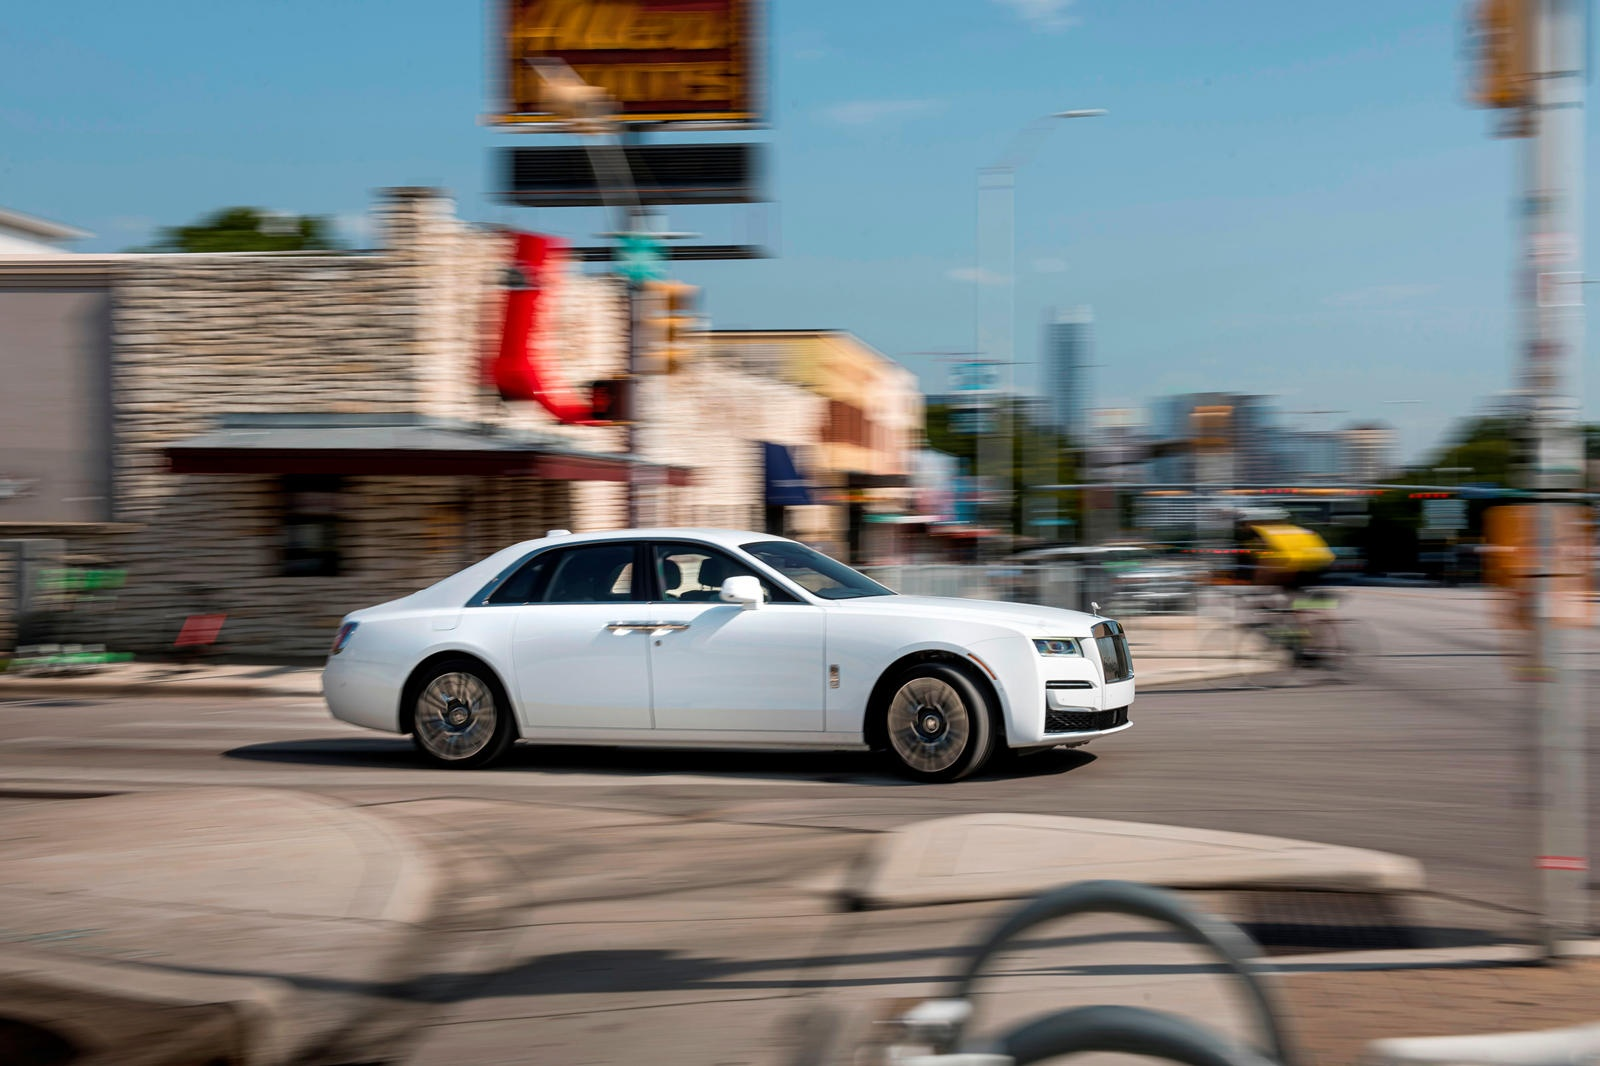 Danh gia Rolls-Royce Ghost 2021 anh 29